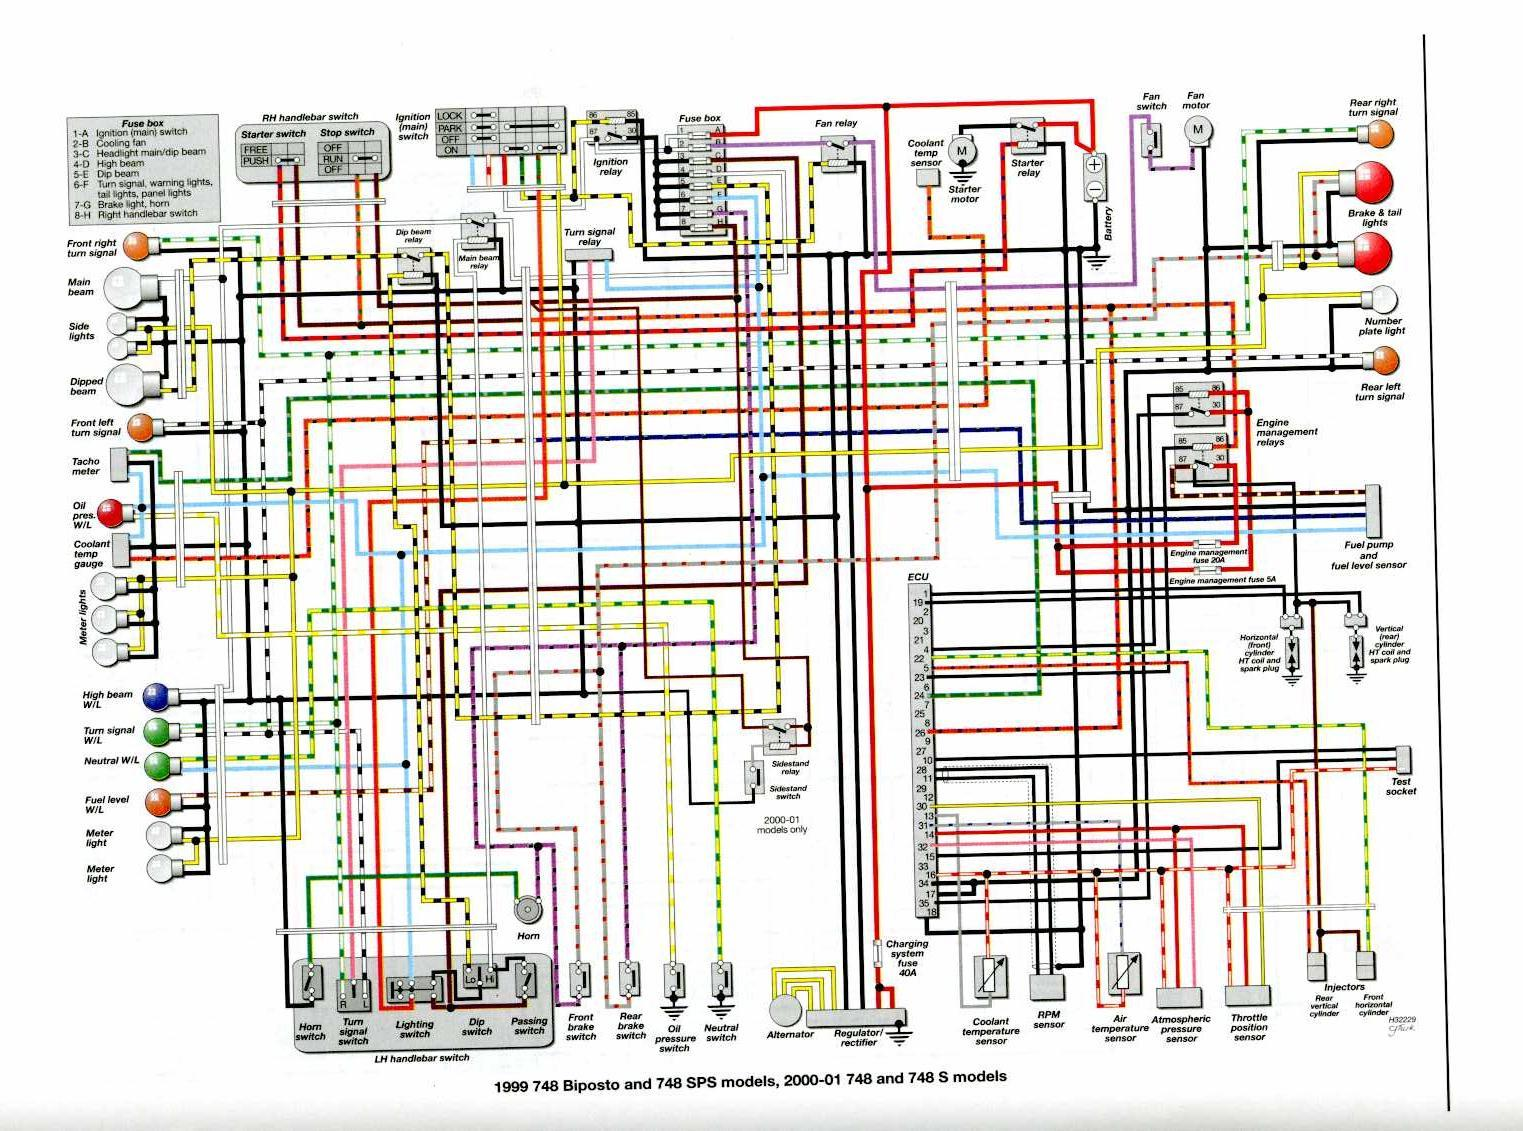 Wiring Diagram For Extending If Remote Onkyo Txsr601diagram 53736d1251413963 Can You Email Fax Link Me Superbike 748 2001 Gsxr 600